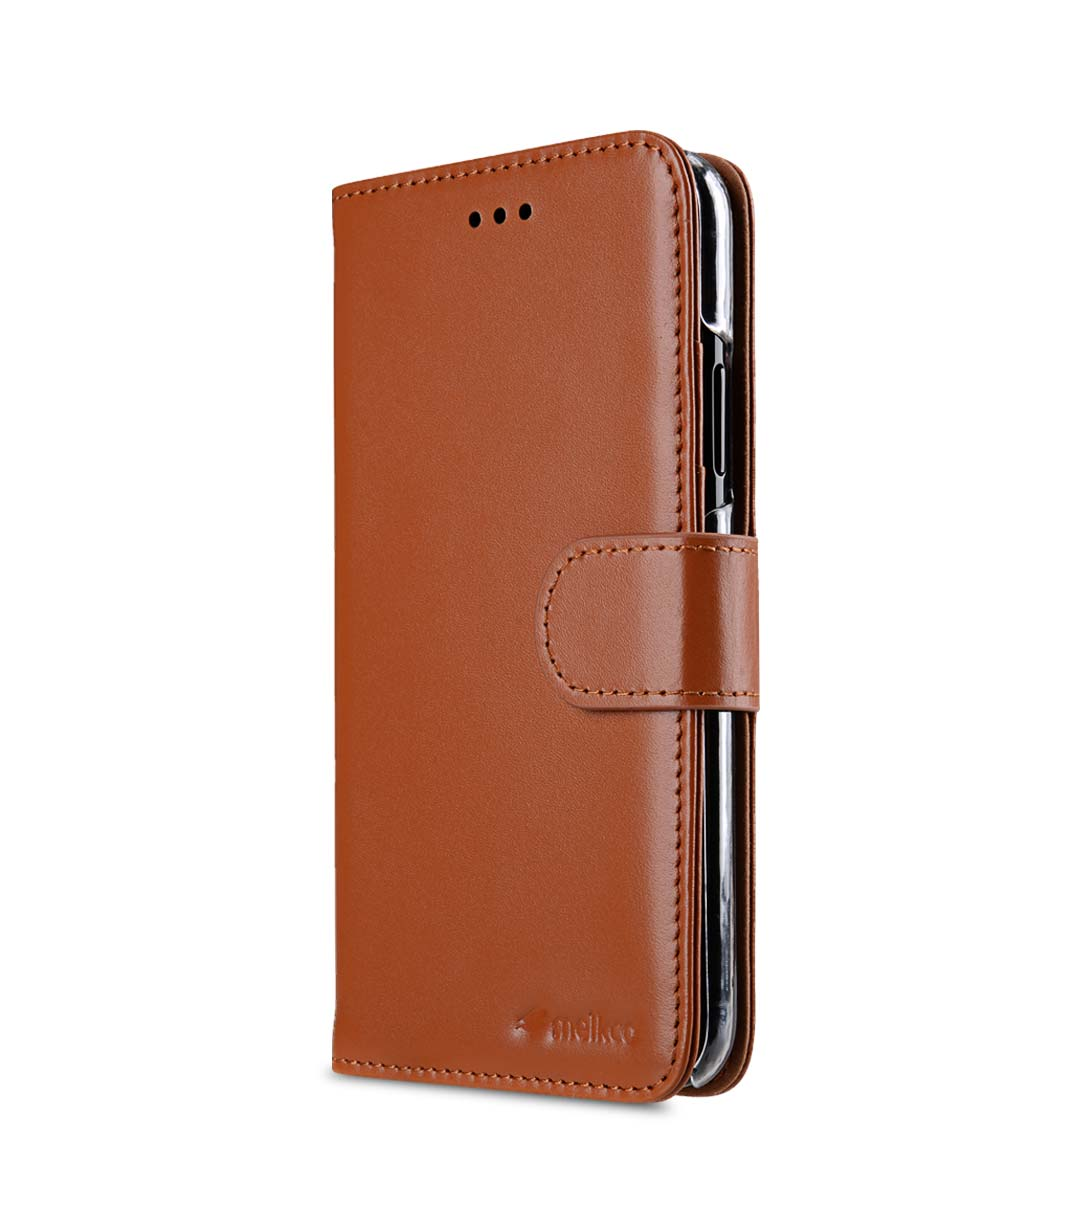 Top 10 iPhone X and iPhone 8 Wallet Cases - Which one ...